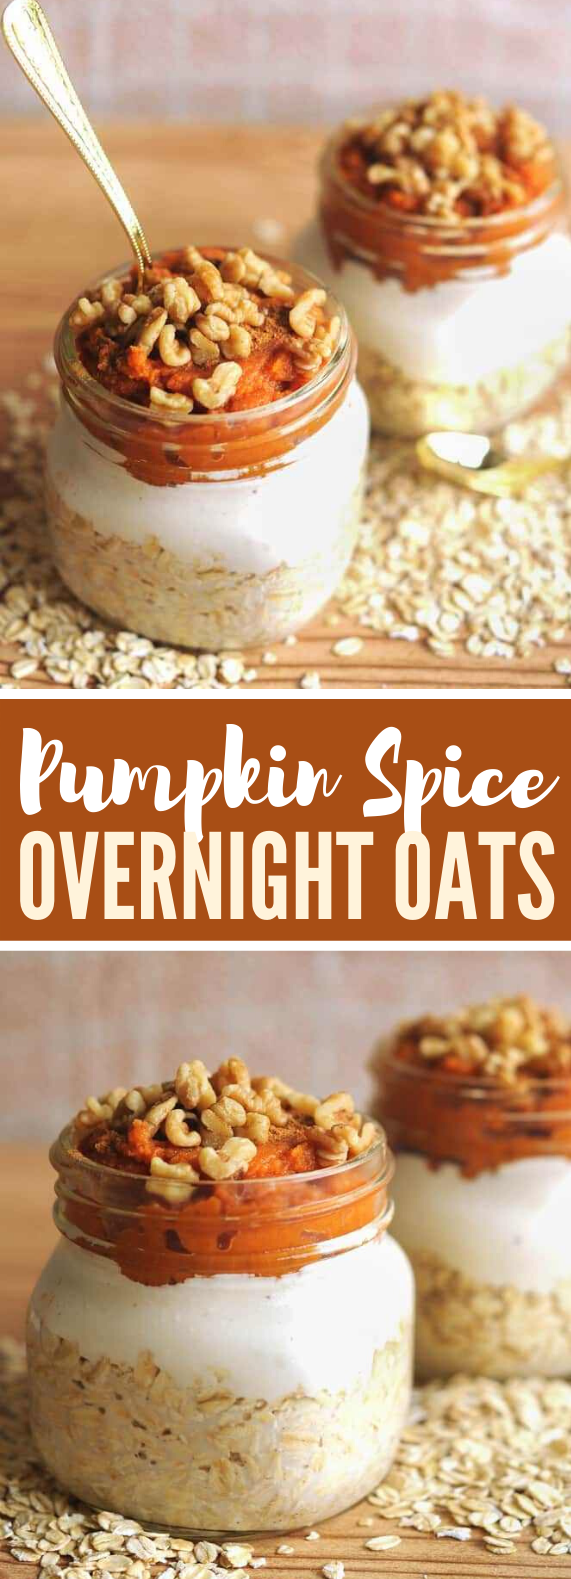 Simple Overnight Oats – Pumpkin Spice Overnight Oats Recipe #healthy #breakfast